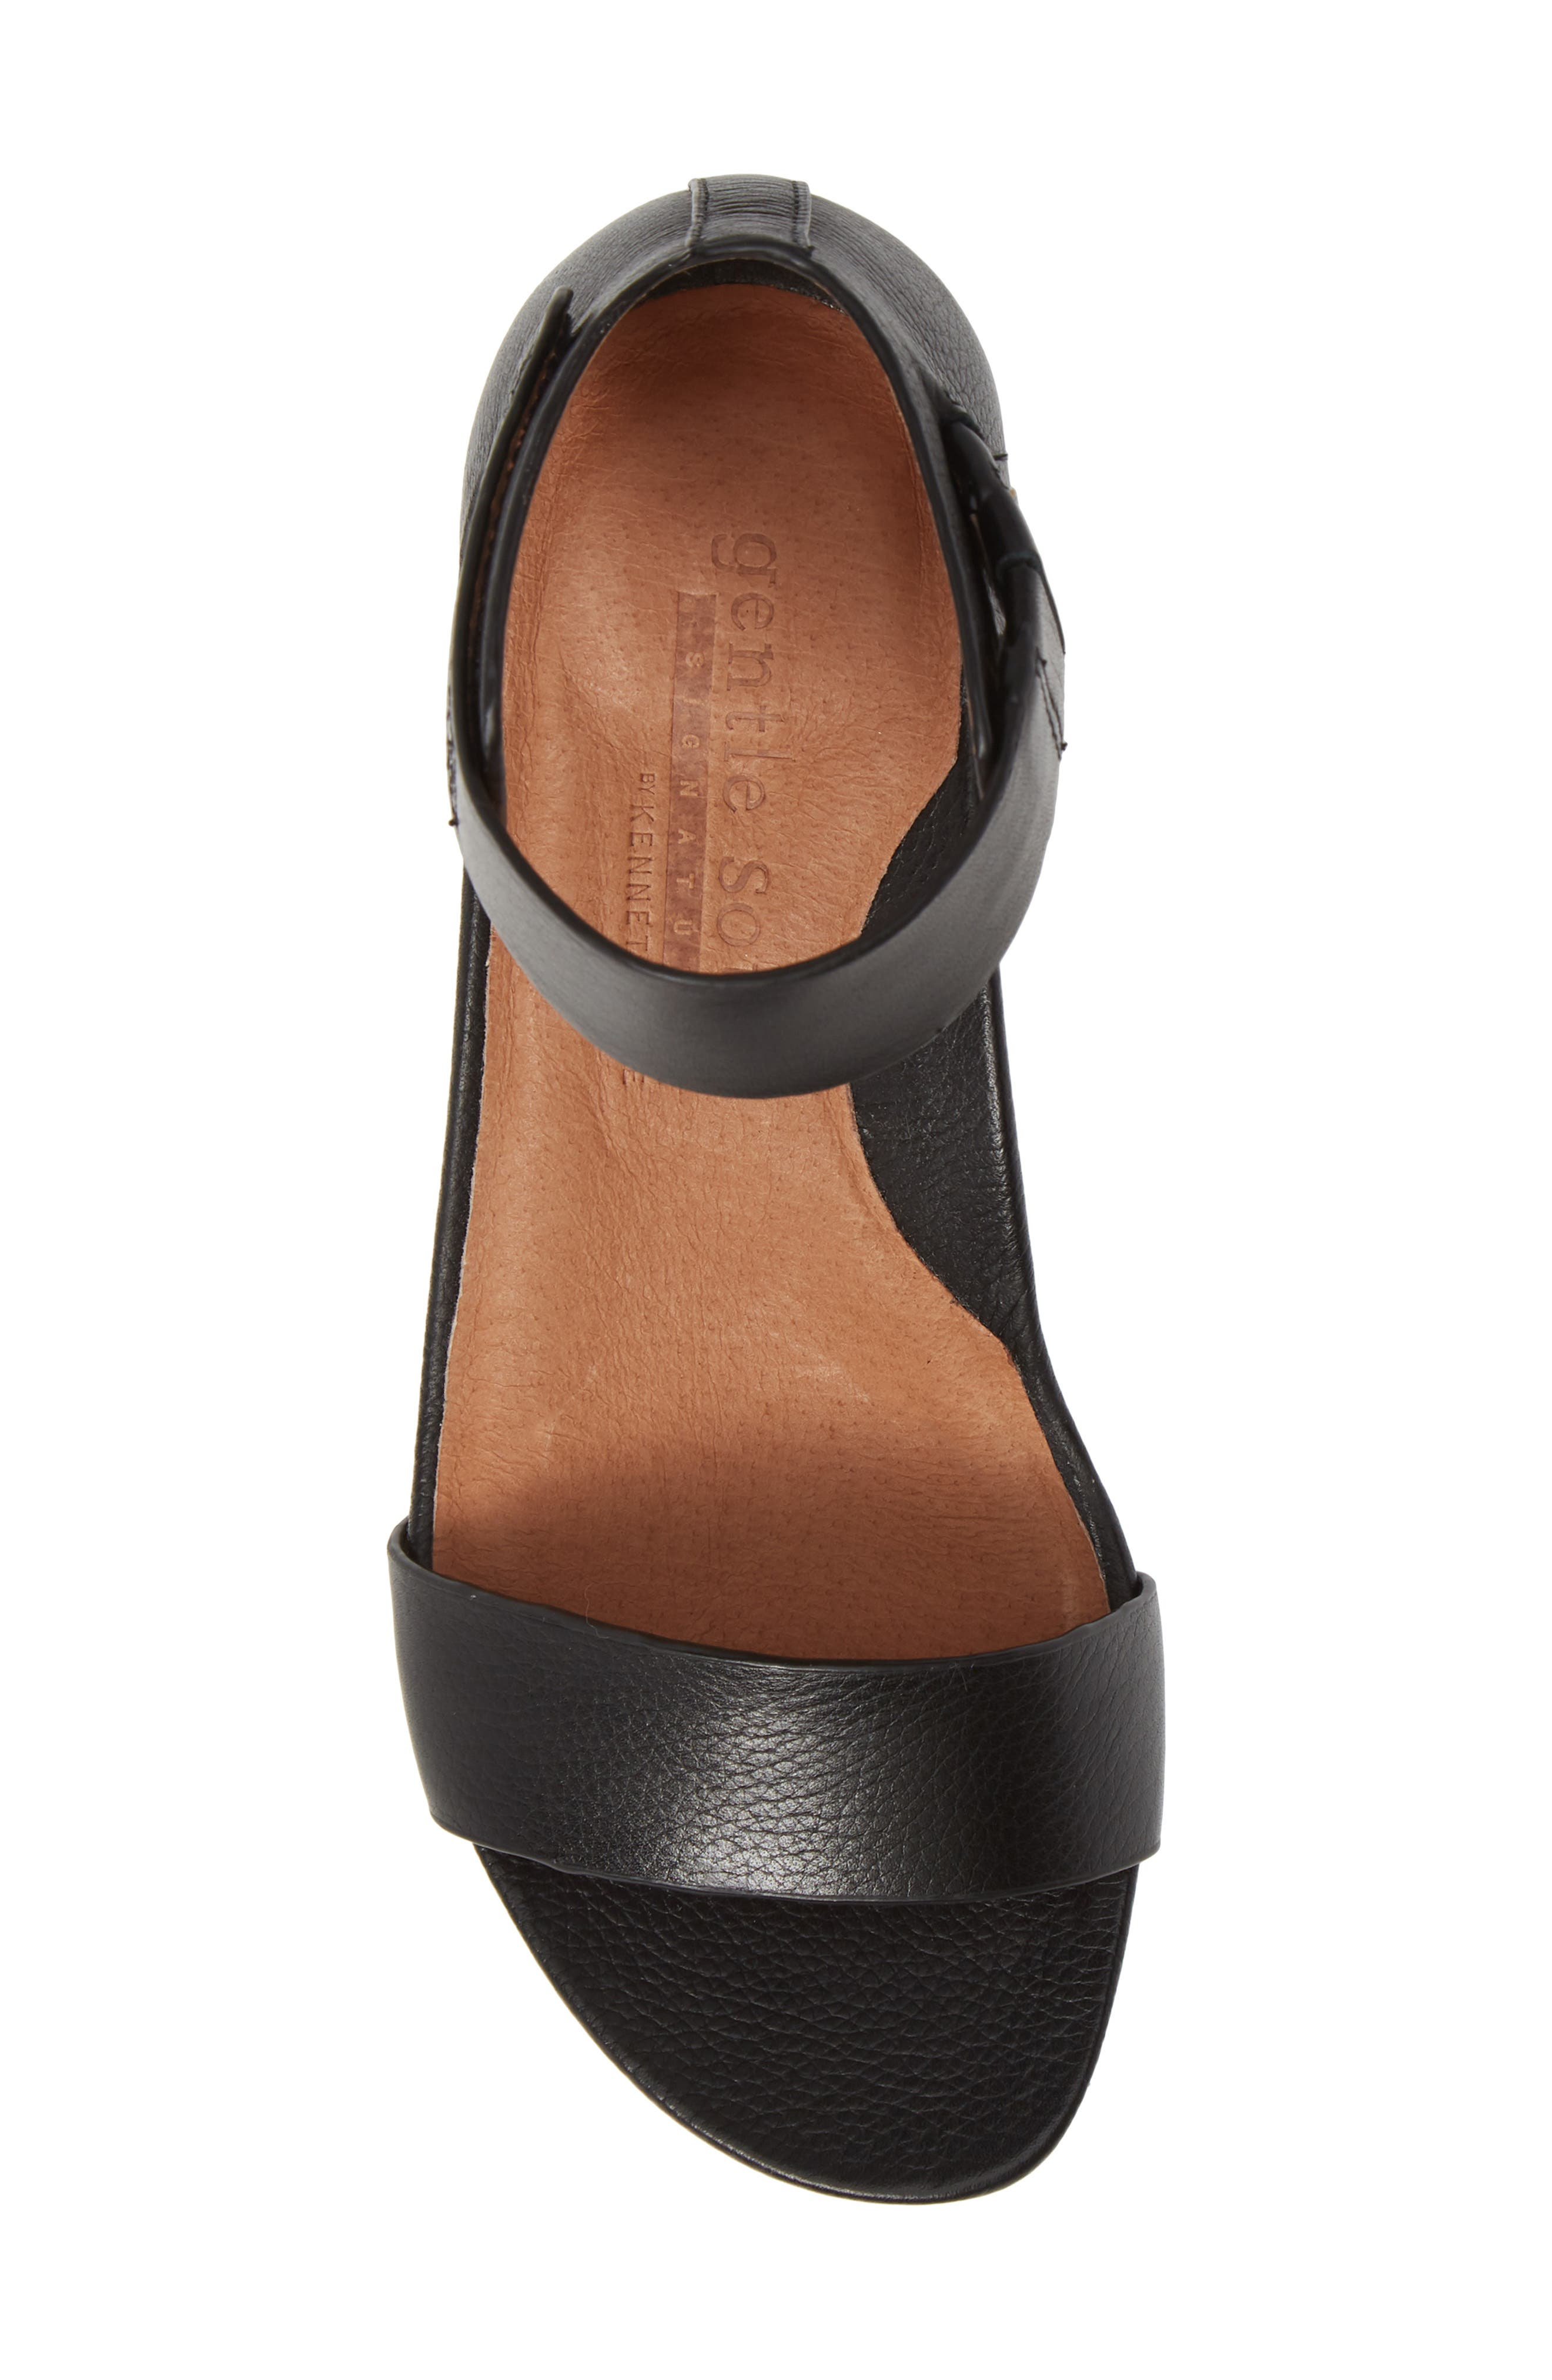 GENTLE SOULS SIGNATURE, Gianna Wedge Sandal, Alternate thumbnail 5, color, BLACK LEATHER